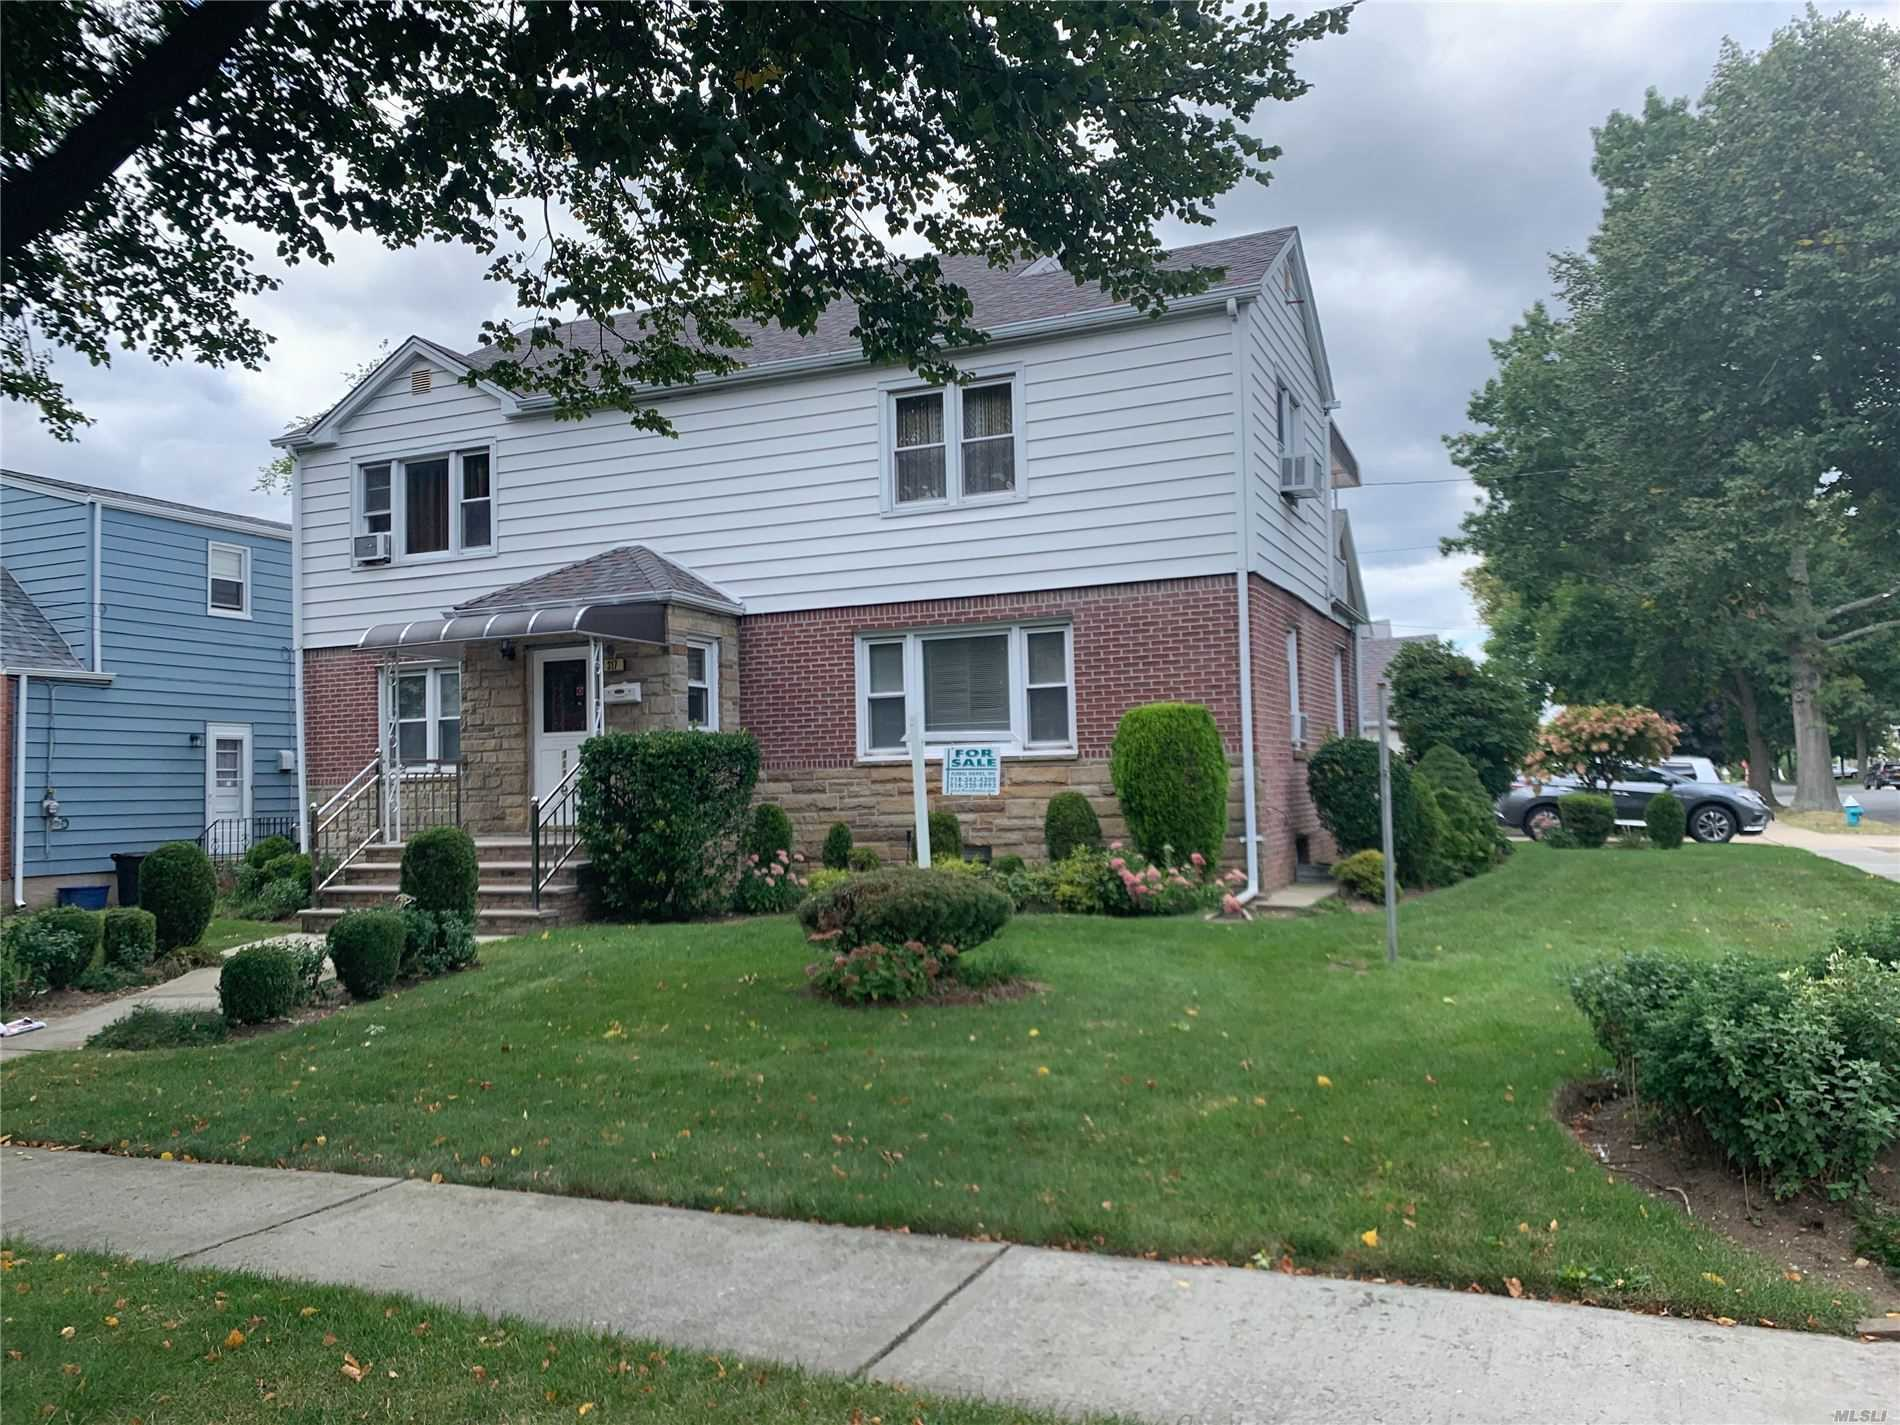 Property for sale at 317 Whittier Avenue, Floral Park NY 11001, Floral Park,  New York 11001